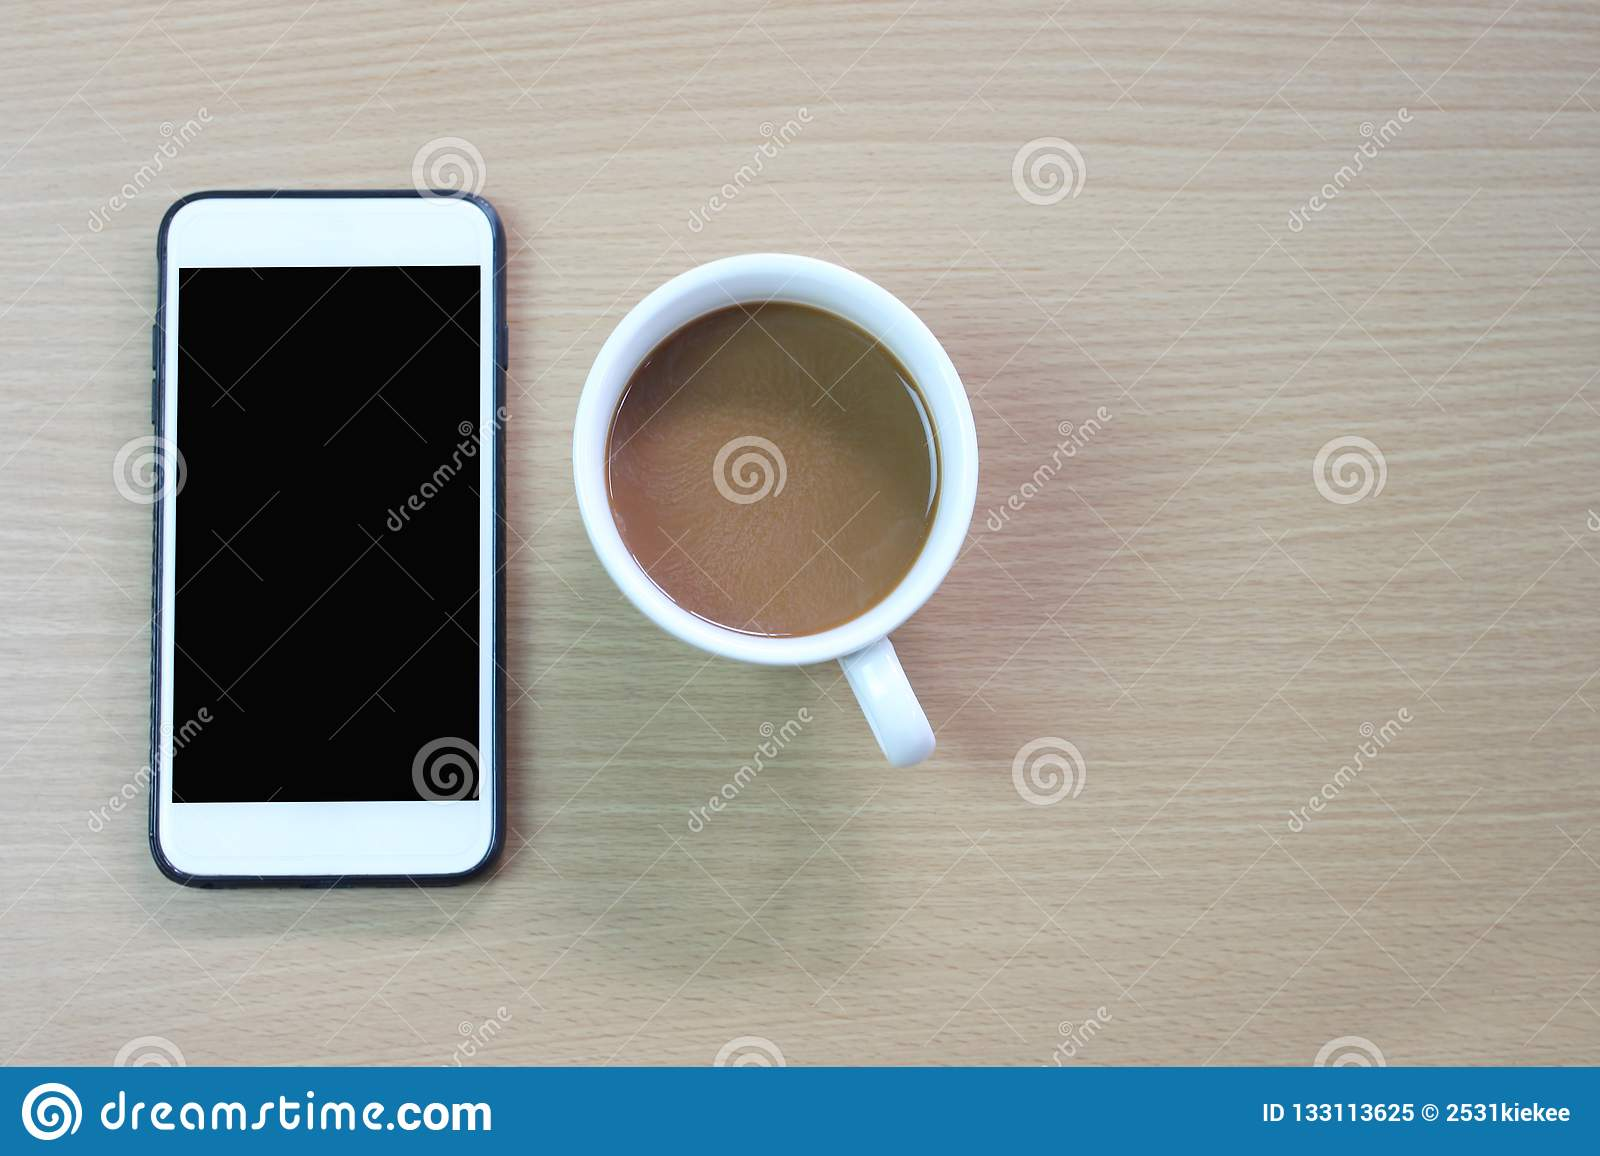 white coffee mug and blank screen of smartphone on a brown wooden floor.